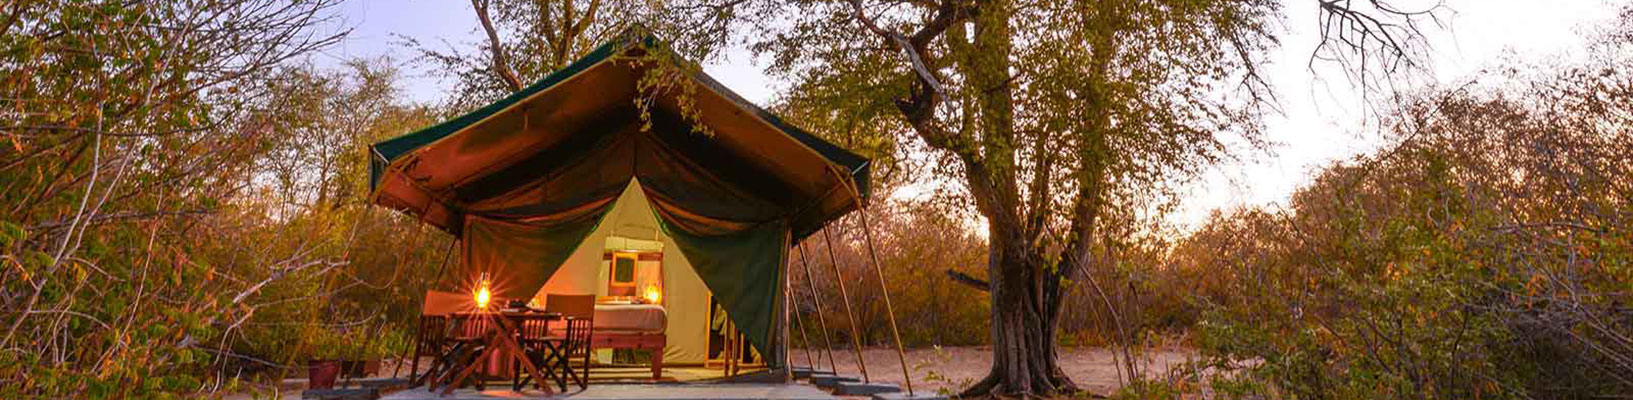 1-tuskers-bush-camp-tent2.jpg